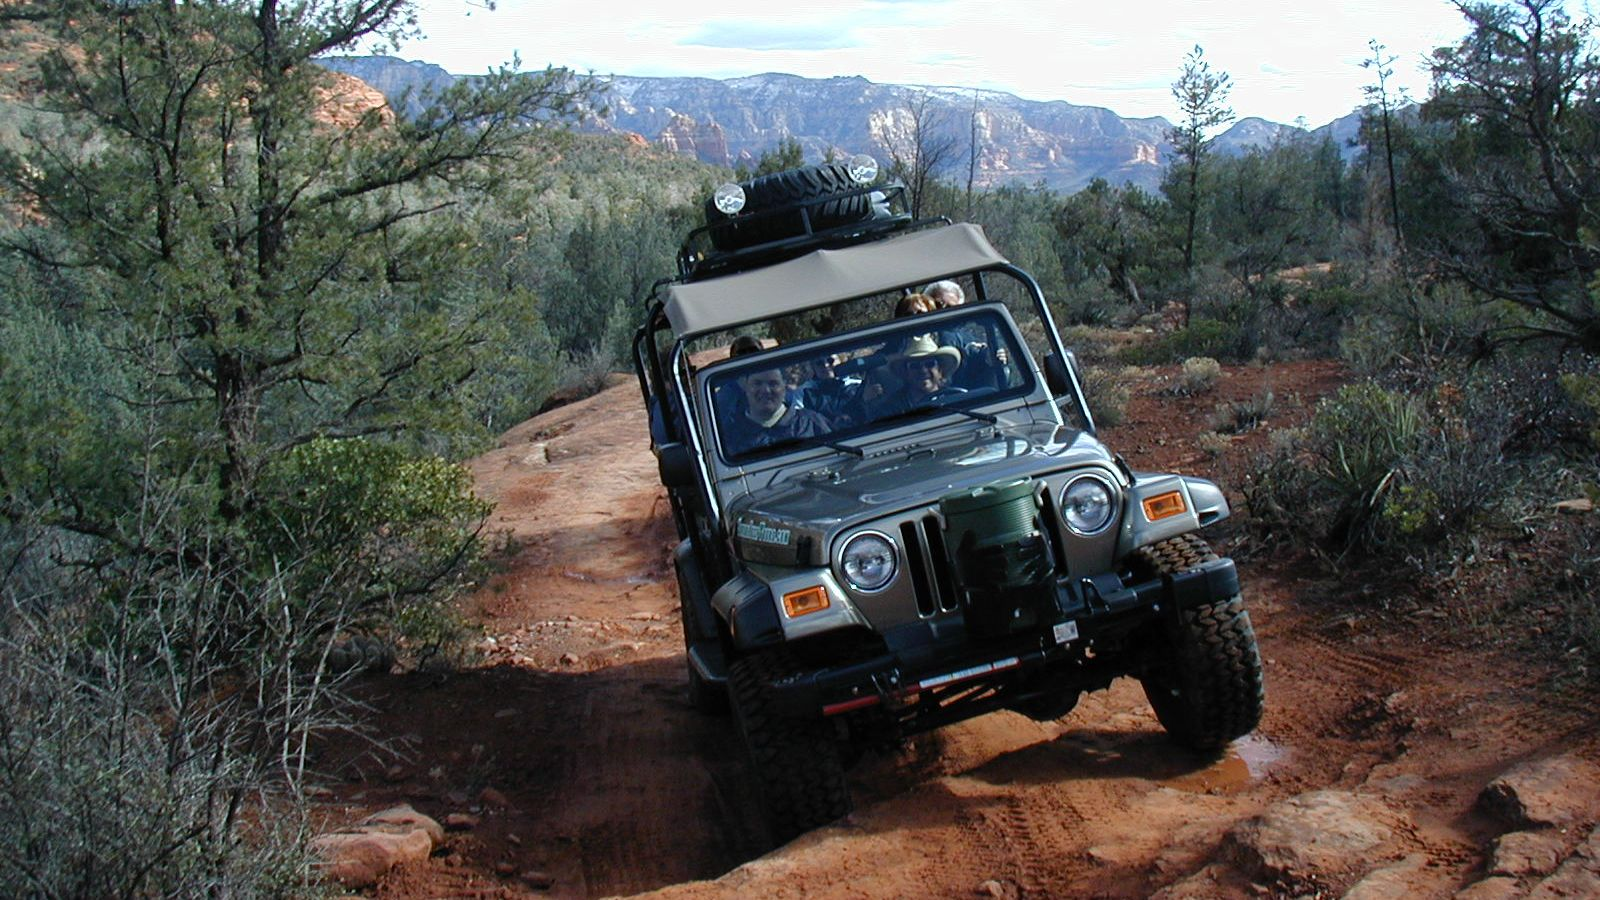 Off-Road Jeep Tour of Sedona's 7 Canyons